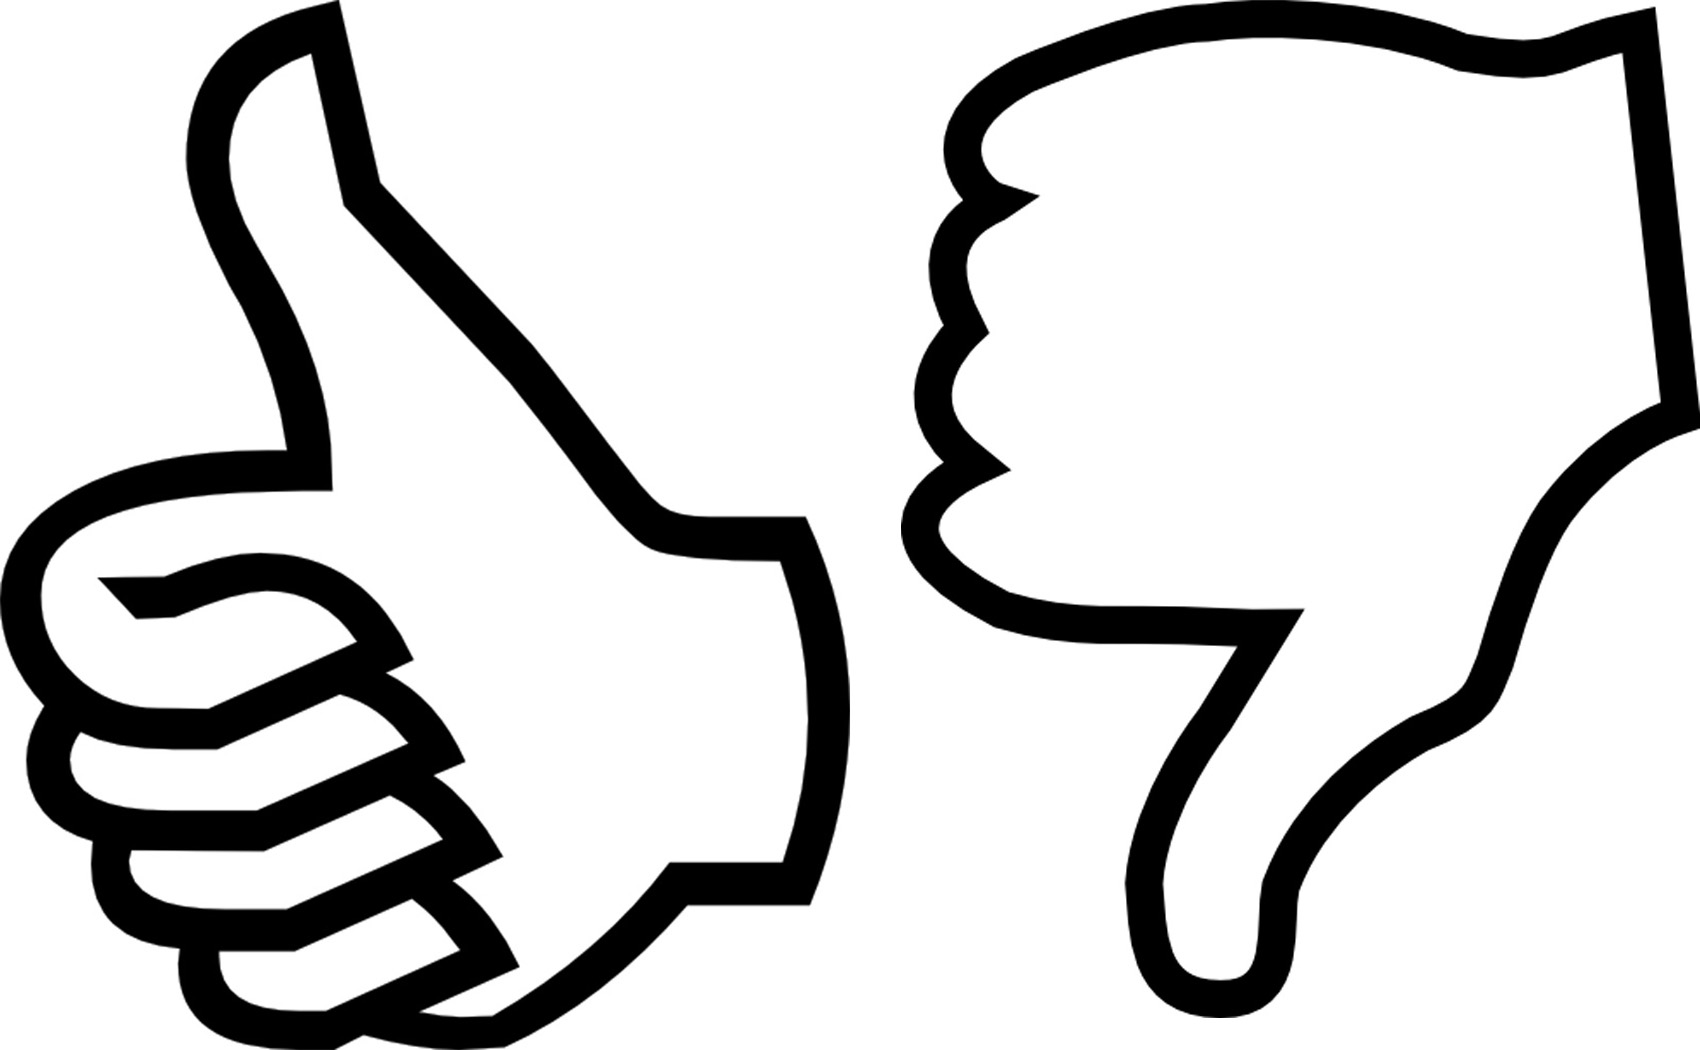 Clipart thumbs up and down.